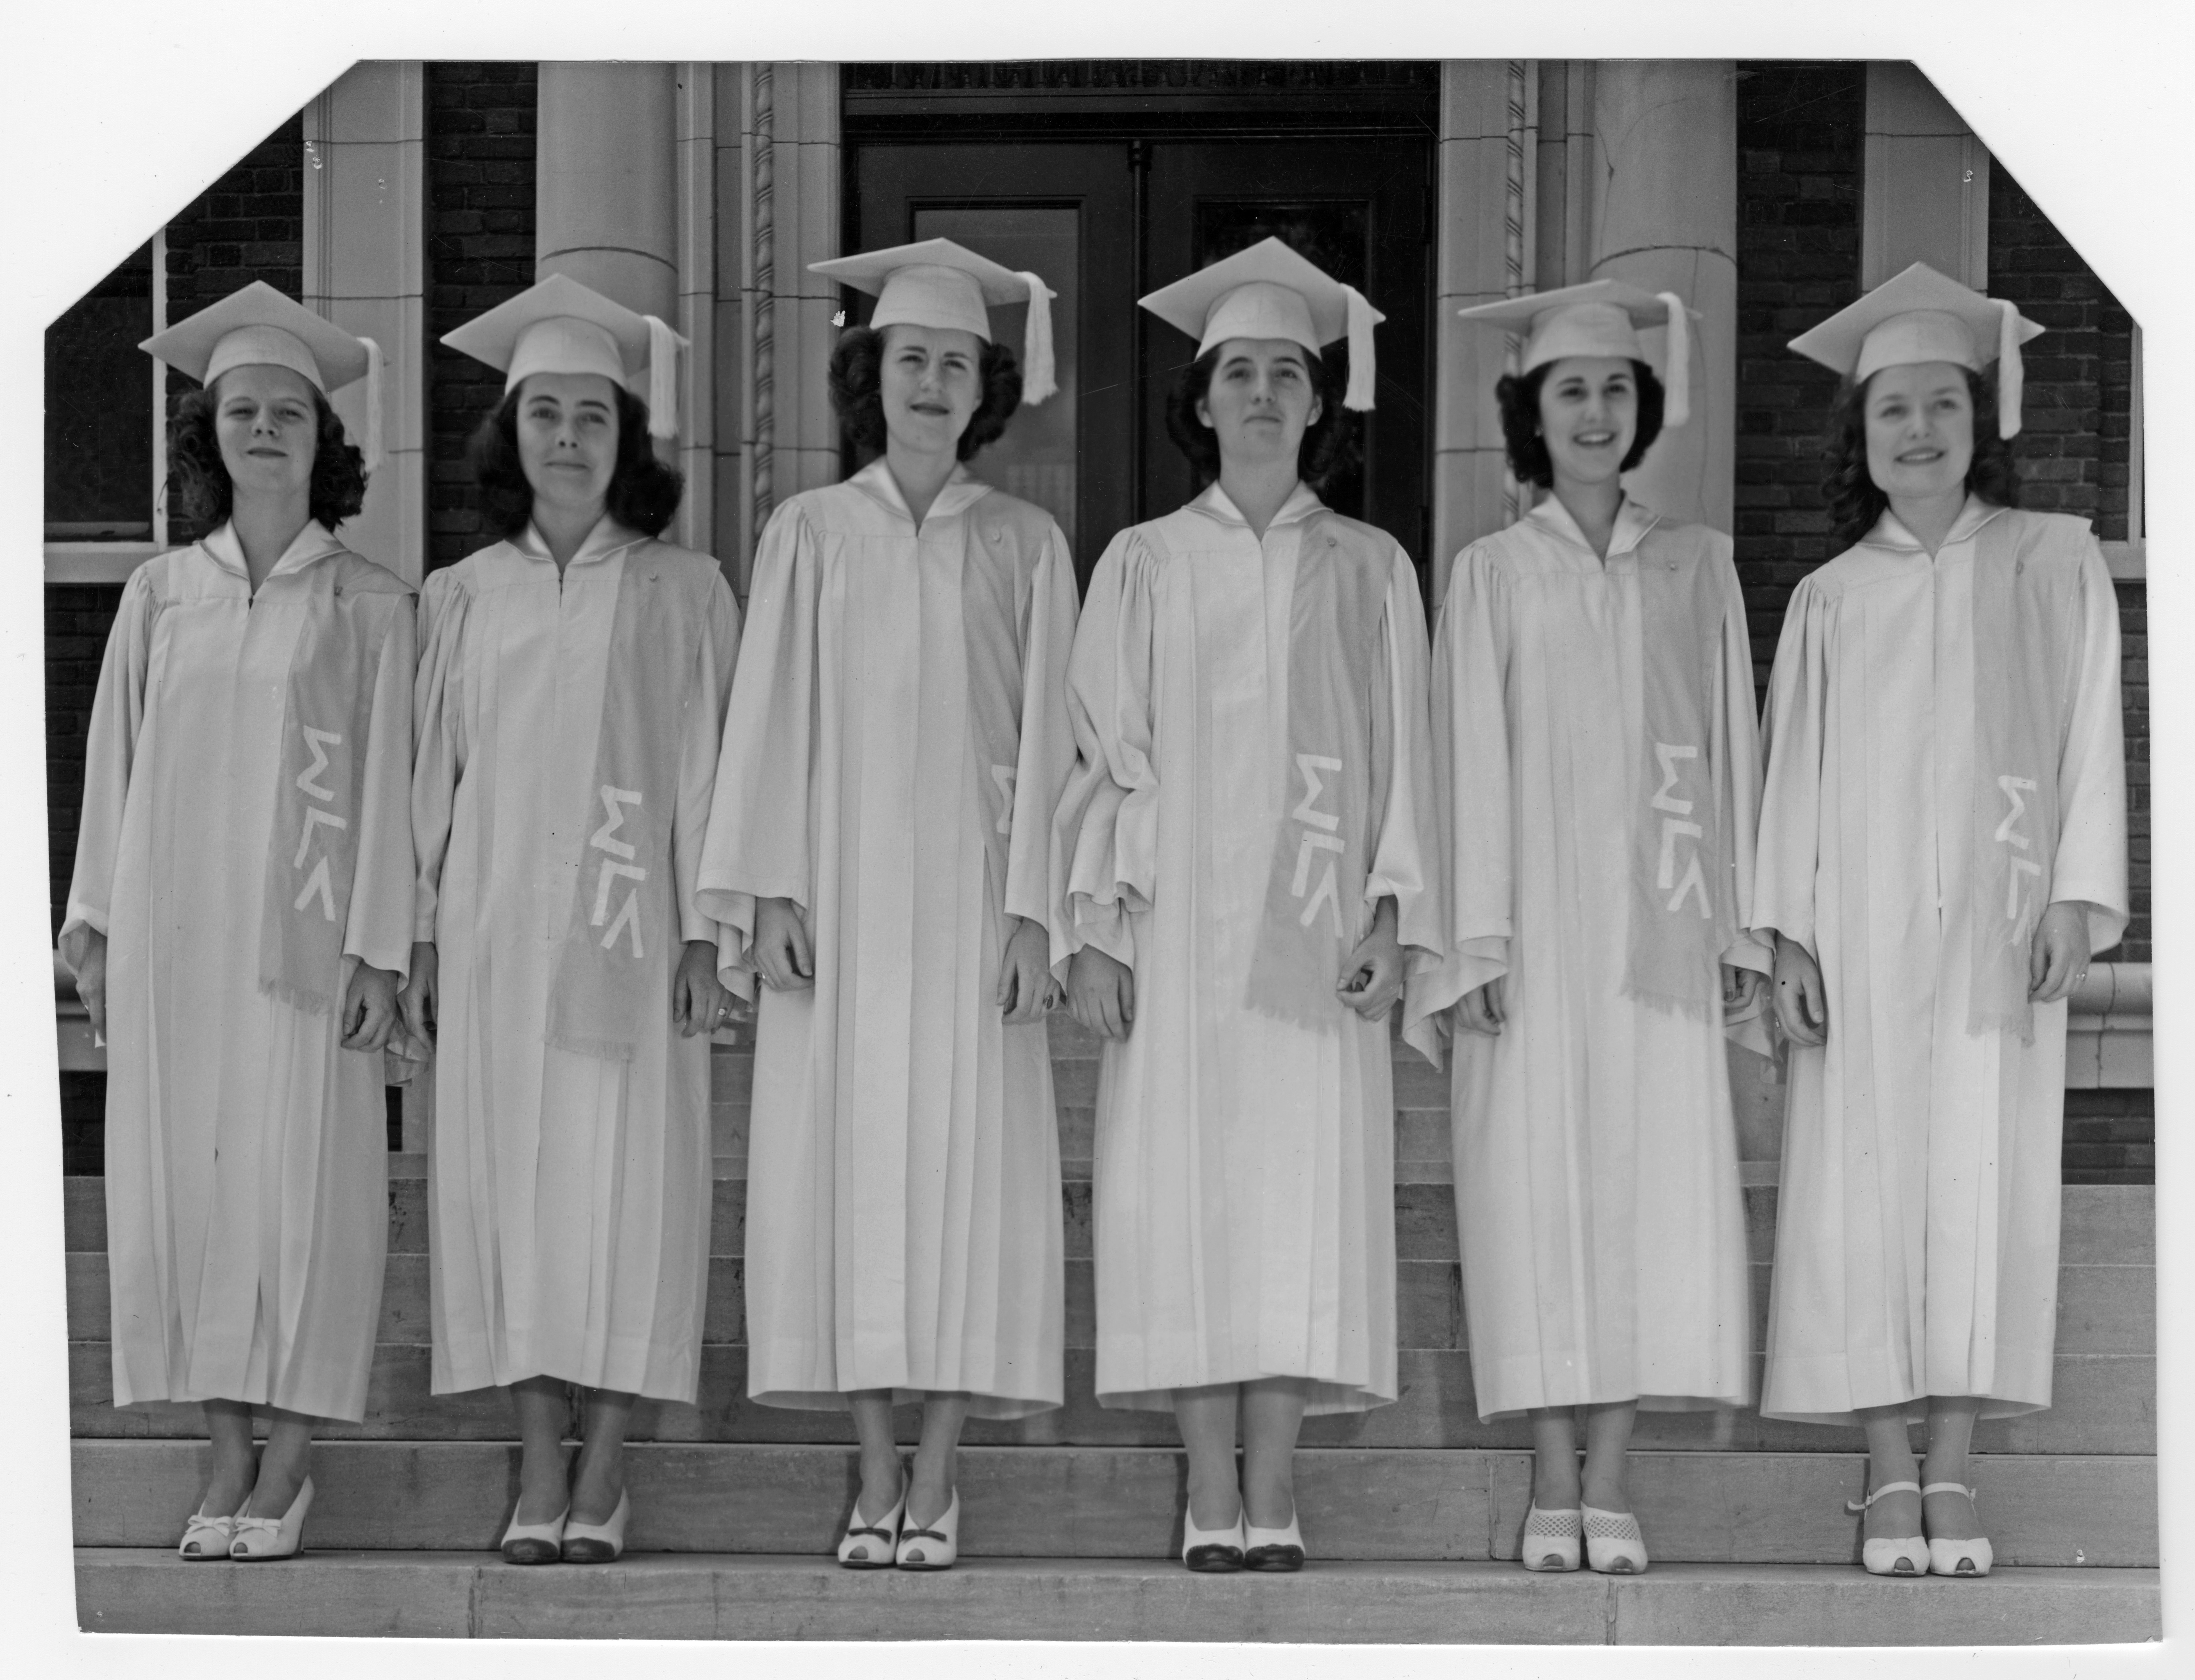 Image of Saint Mary graduates in cap and gown